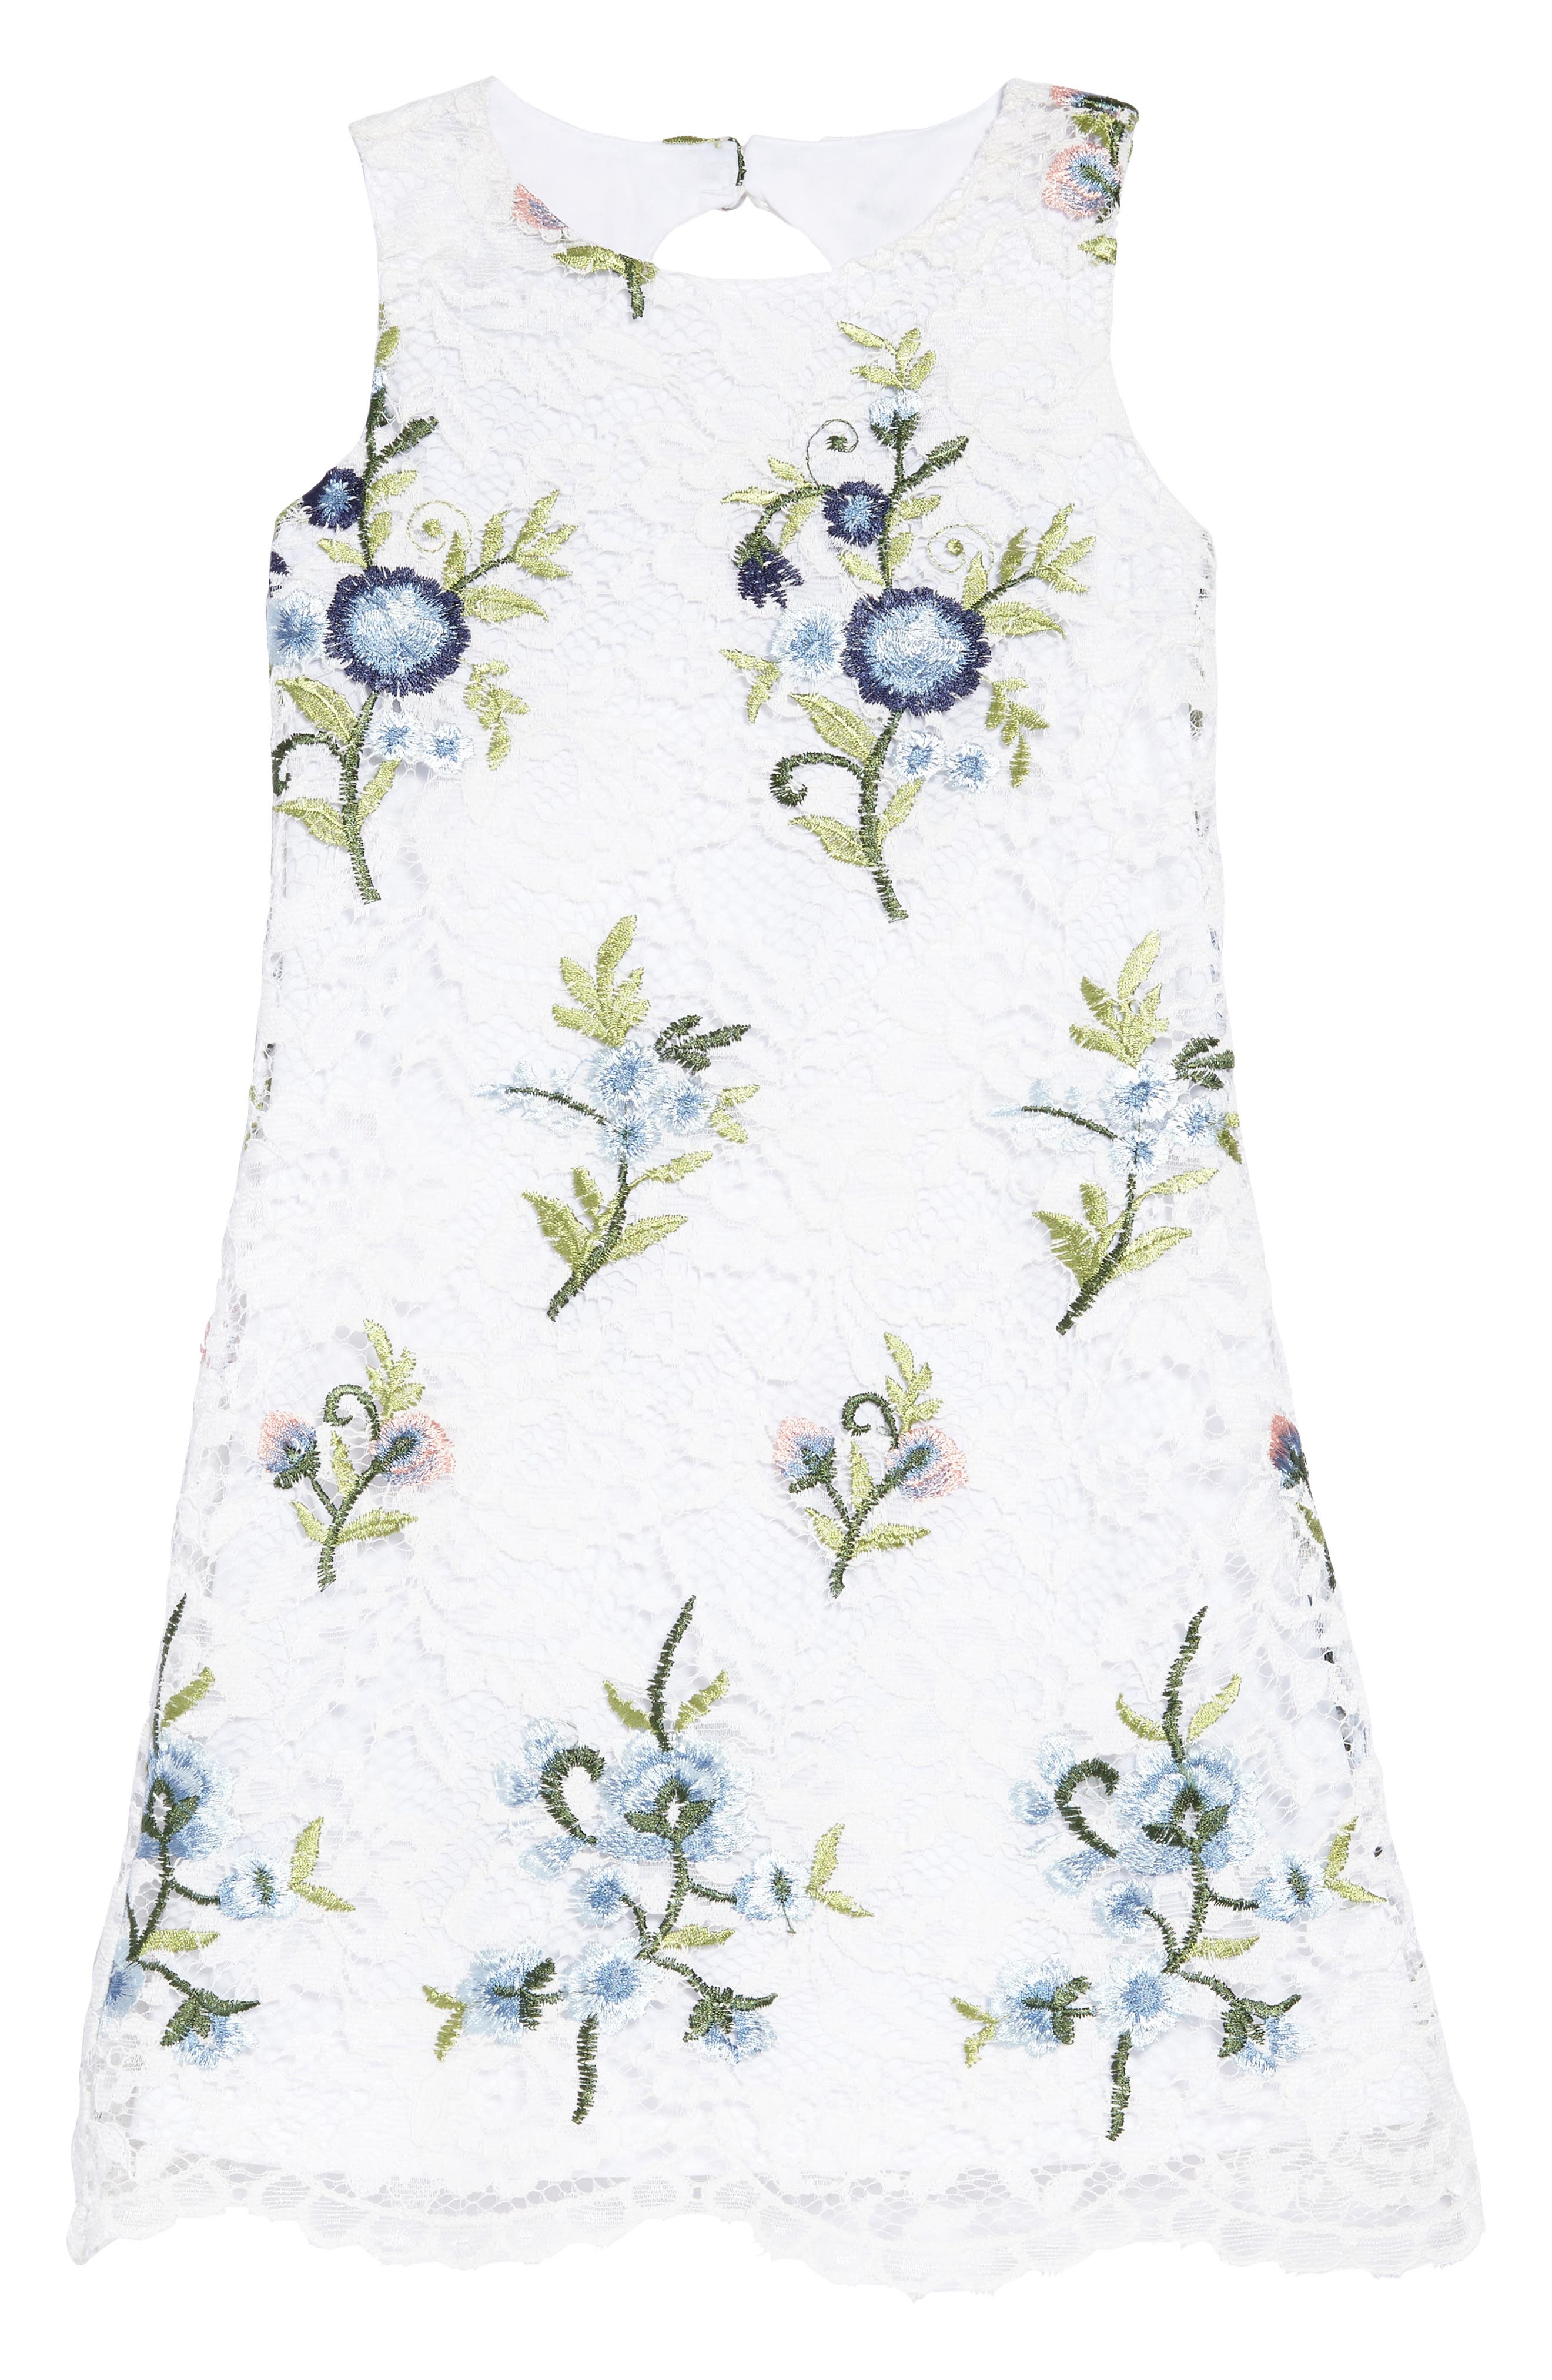 Embroidered Floral Shift Dress,                         Main,                         color, White